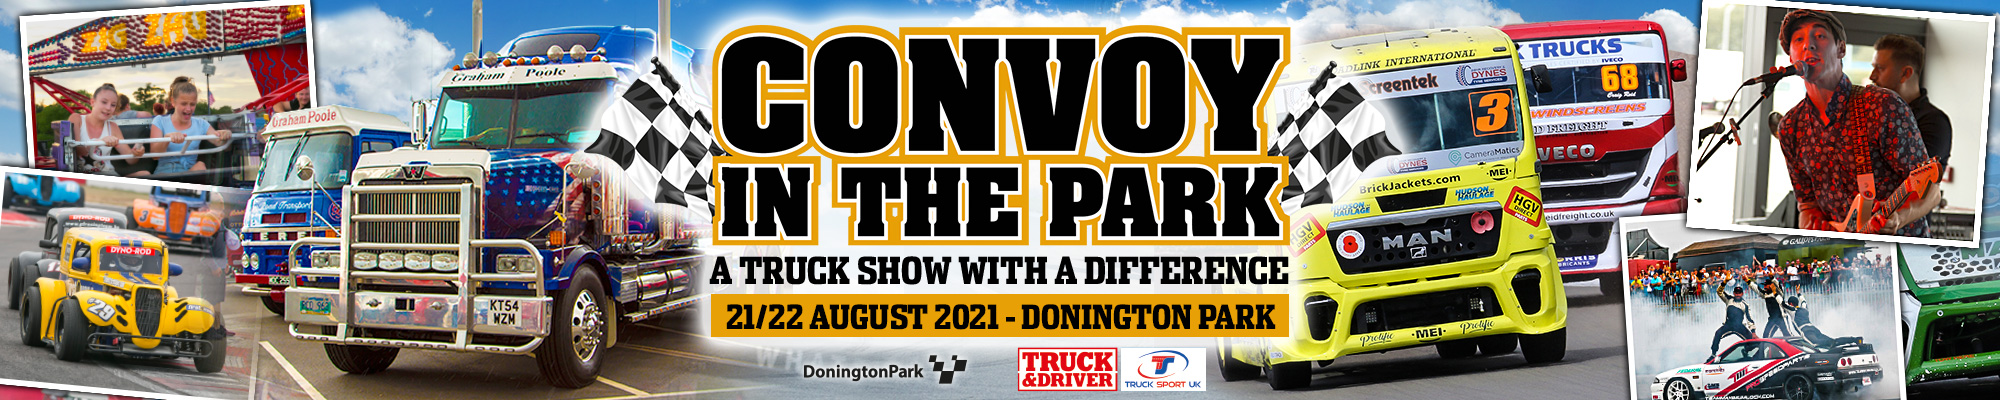 Convoy in the Park featuring British Truck Racing